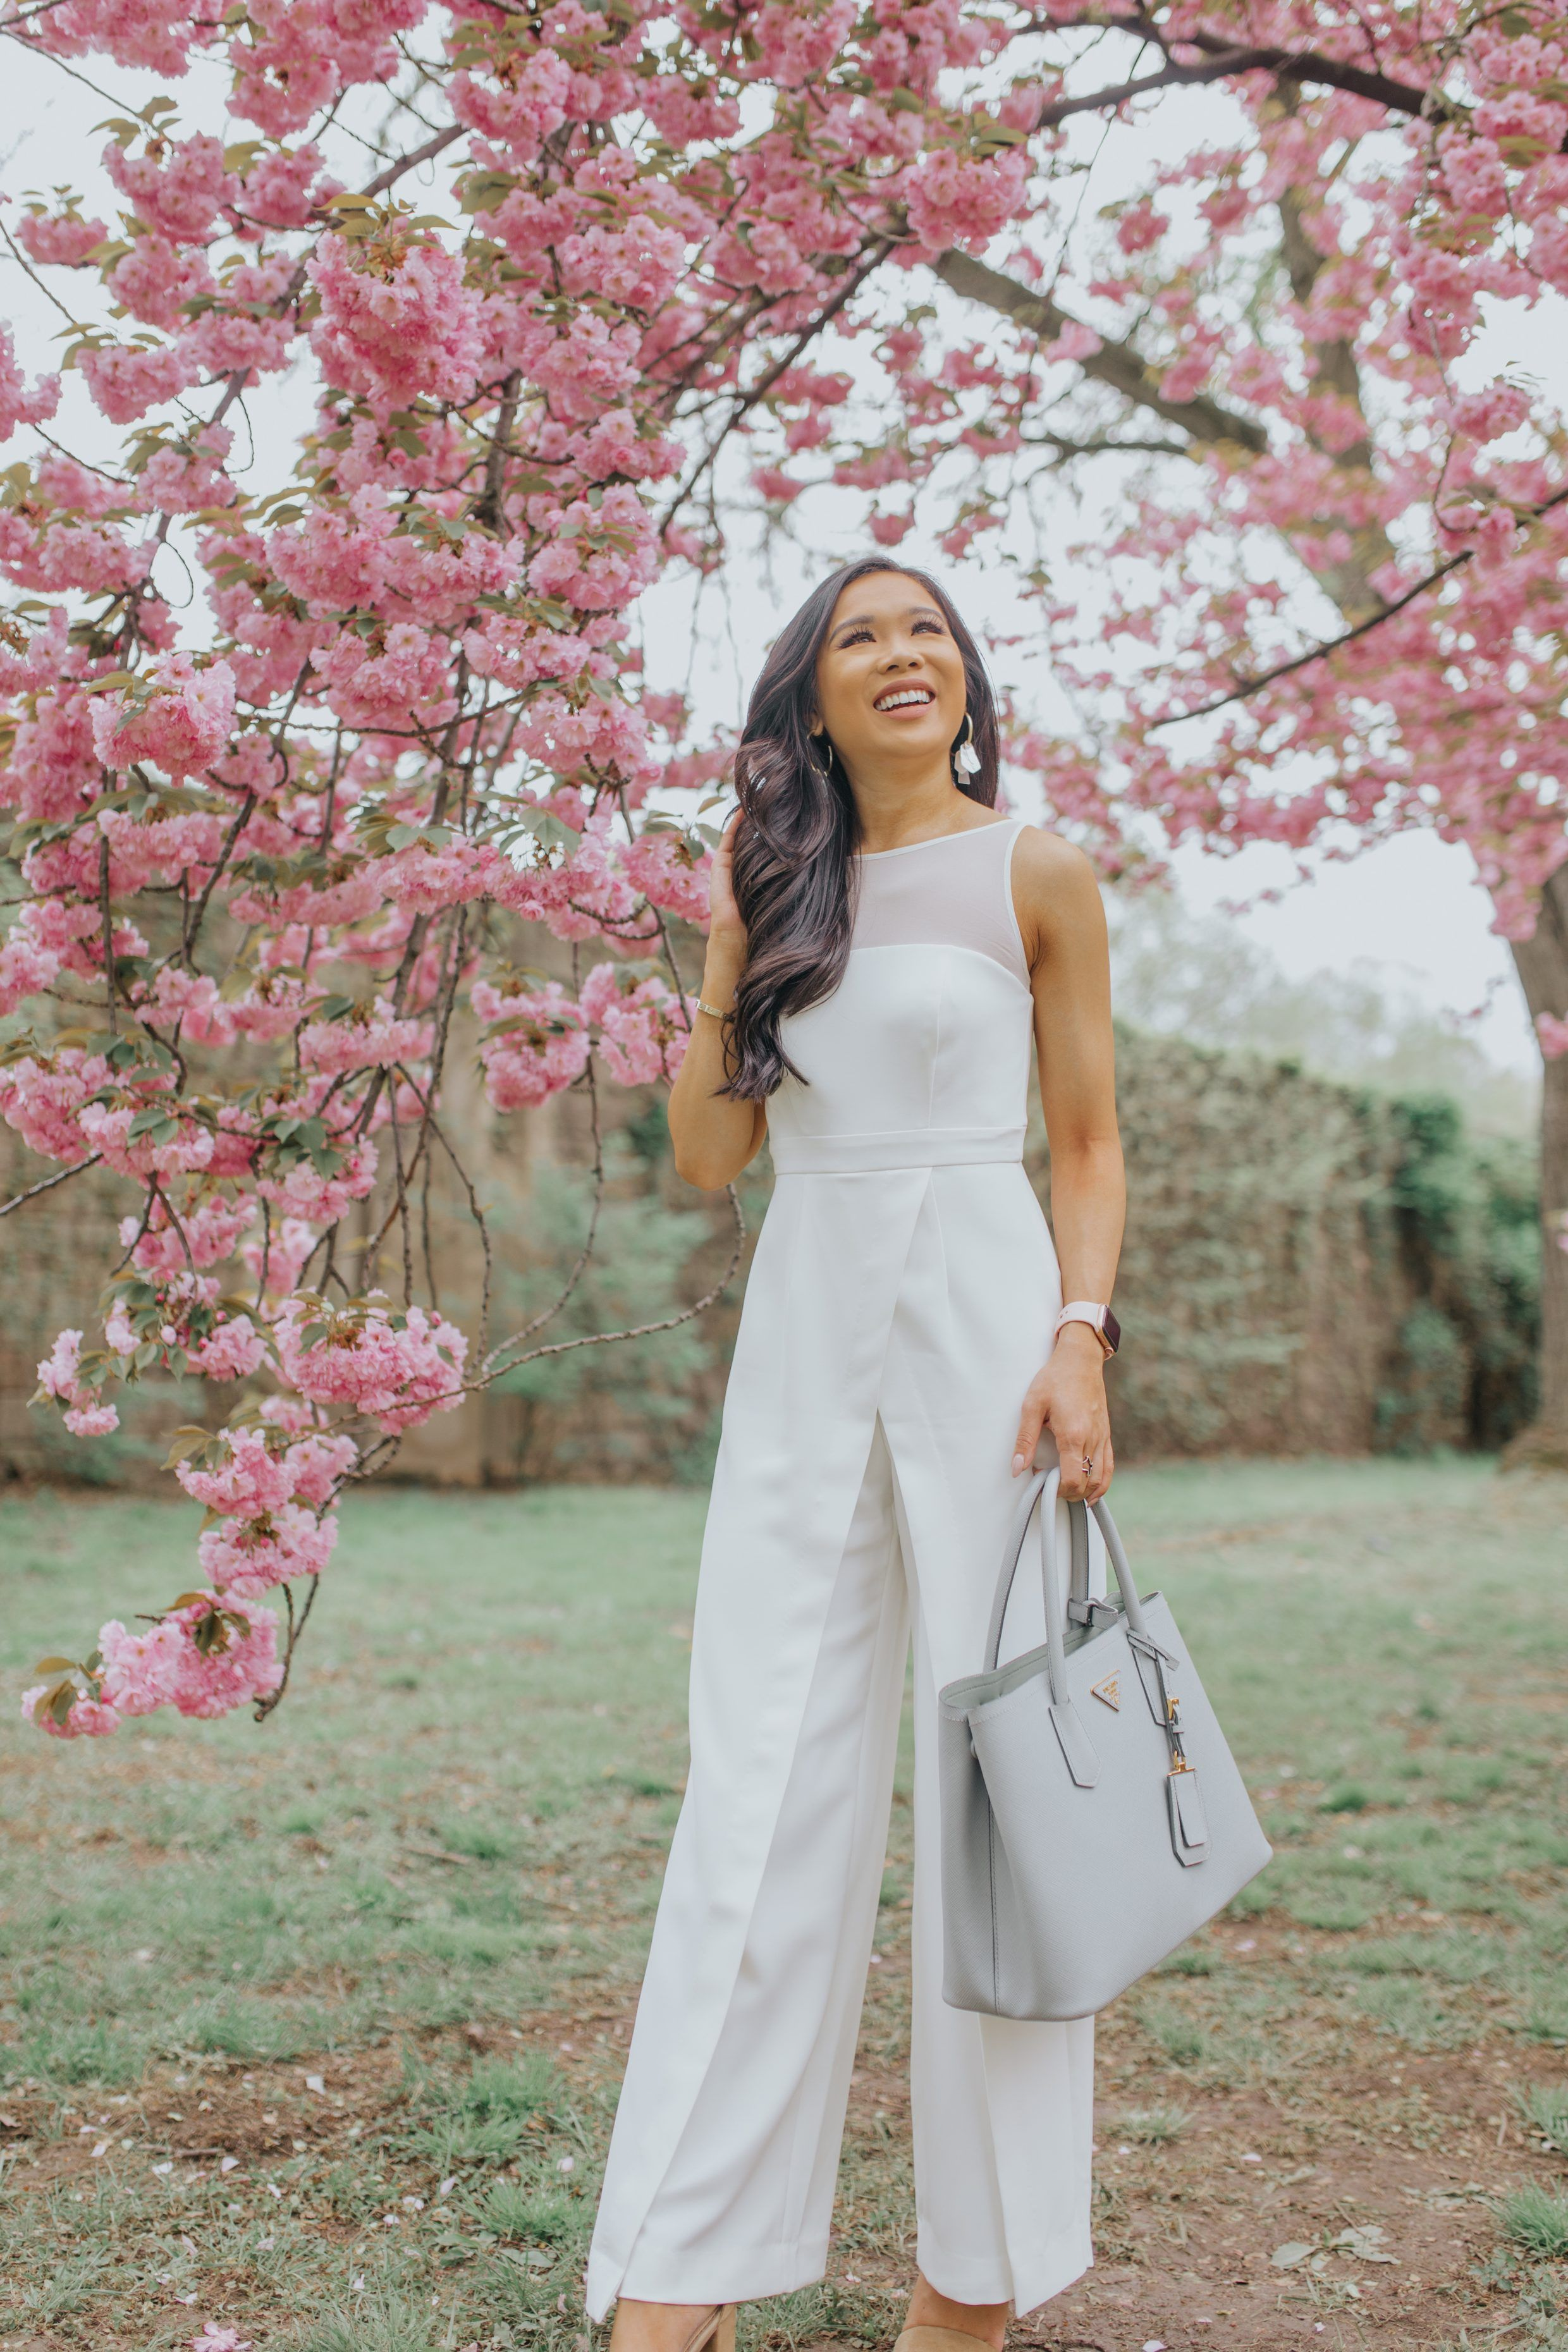 287d72ad6 Hoang-Kim wears a white statement jumpsuit amidst the cherry blossoms in  Washington, D.C.   jumpsuit summer jumpsuit casual jumpsuit elegant jumpsuit  prom ...